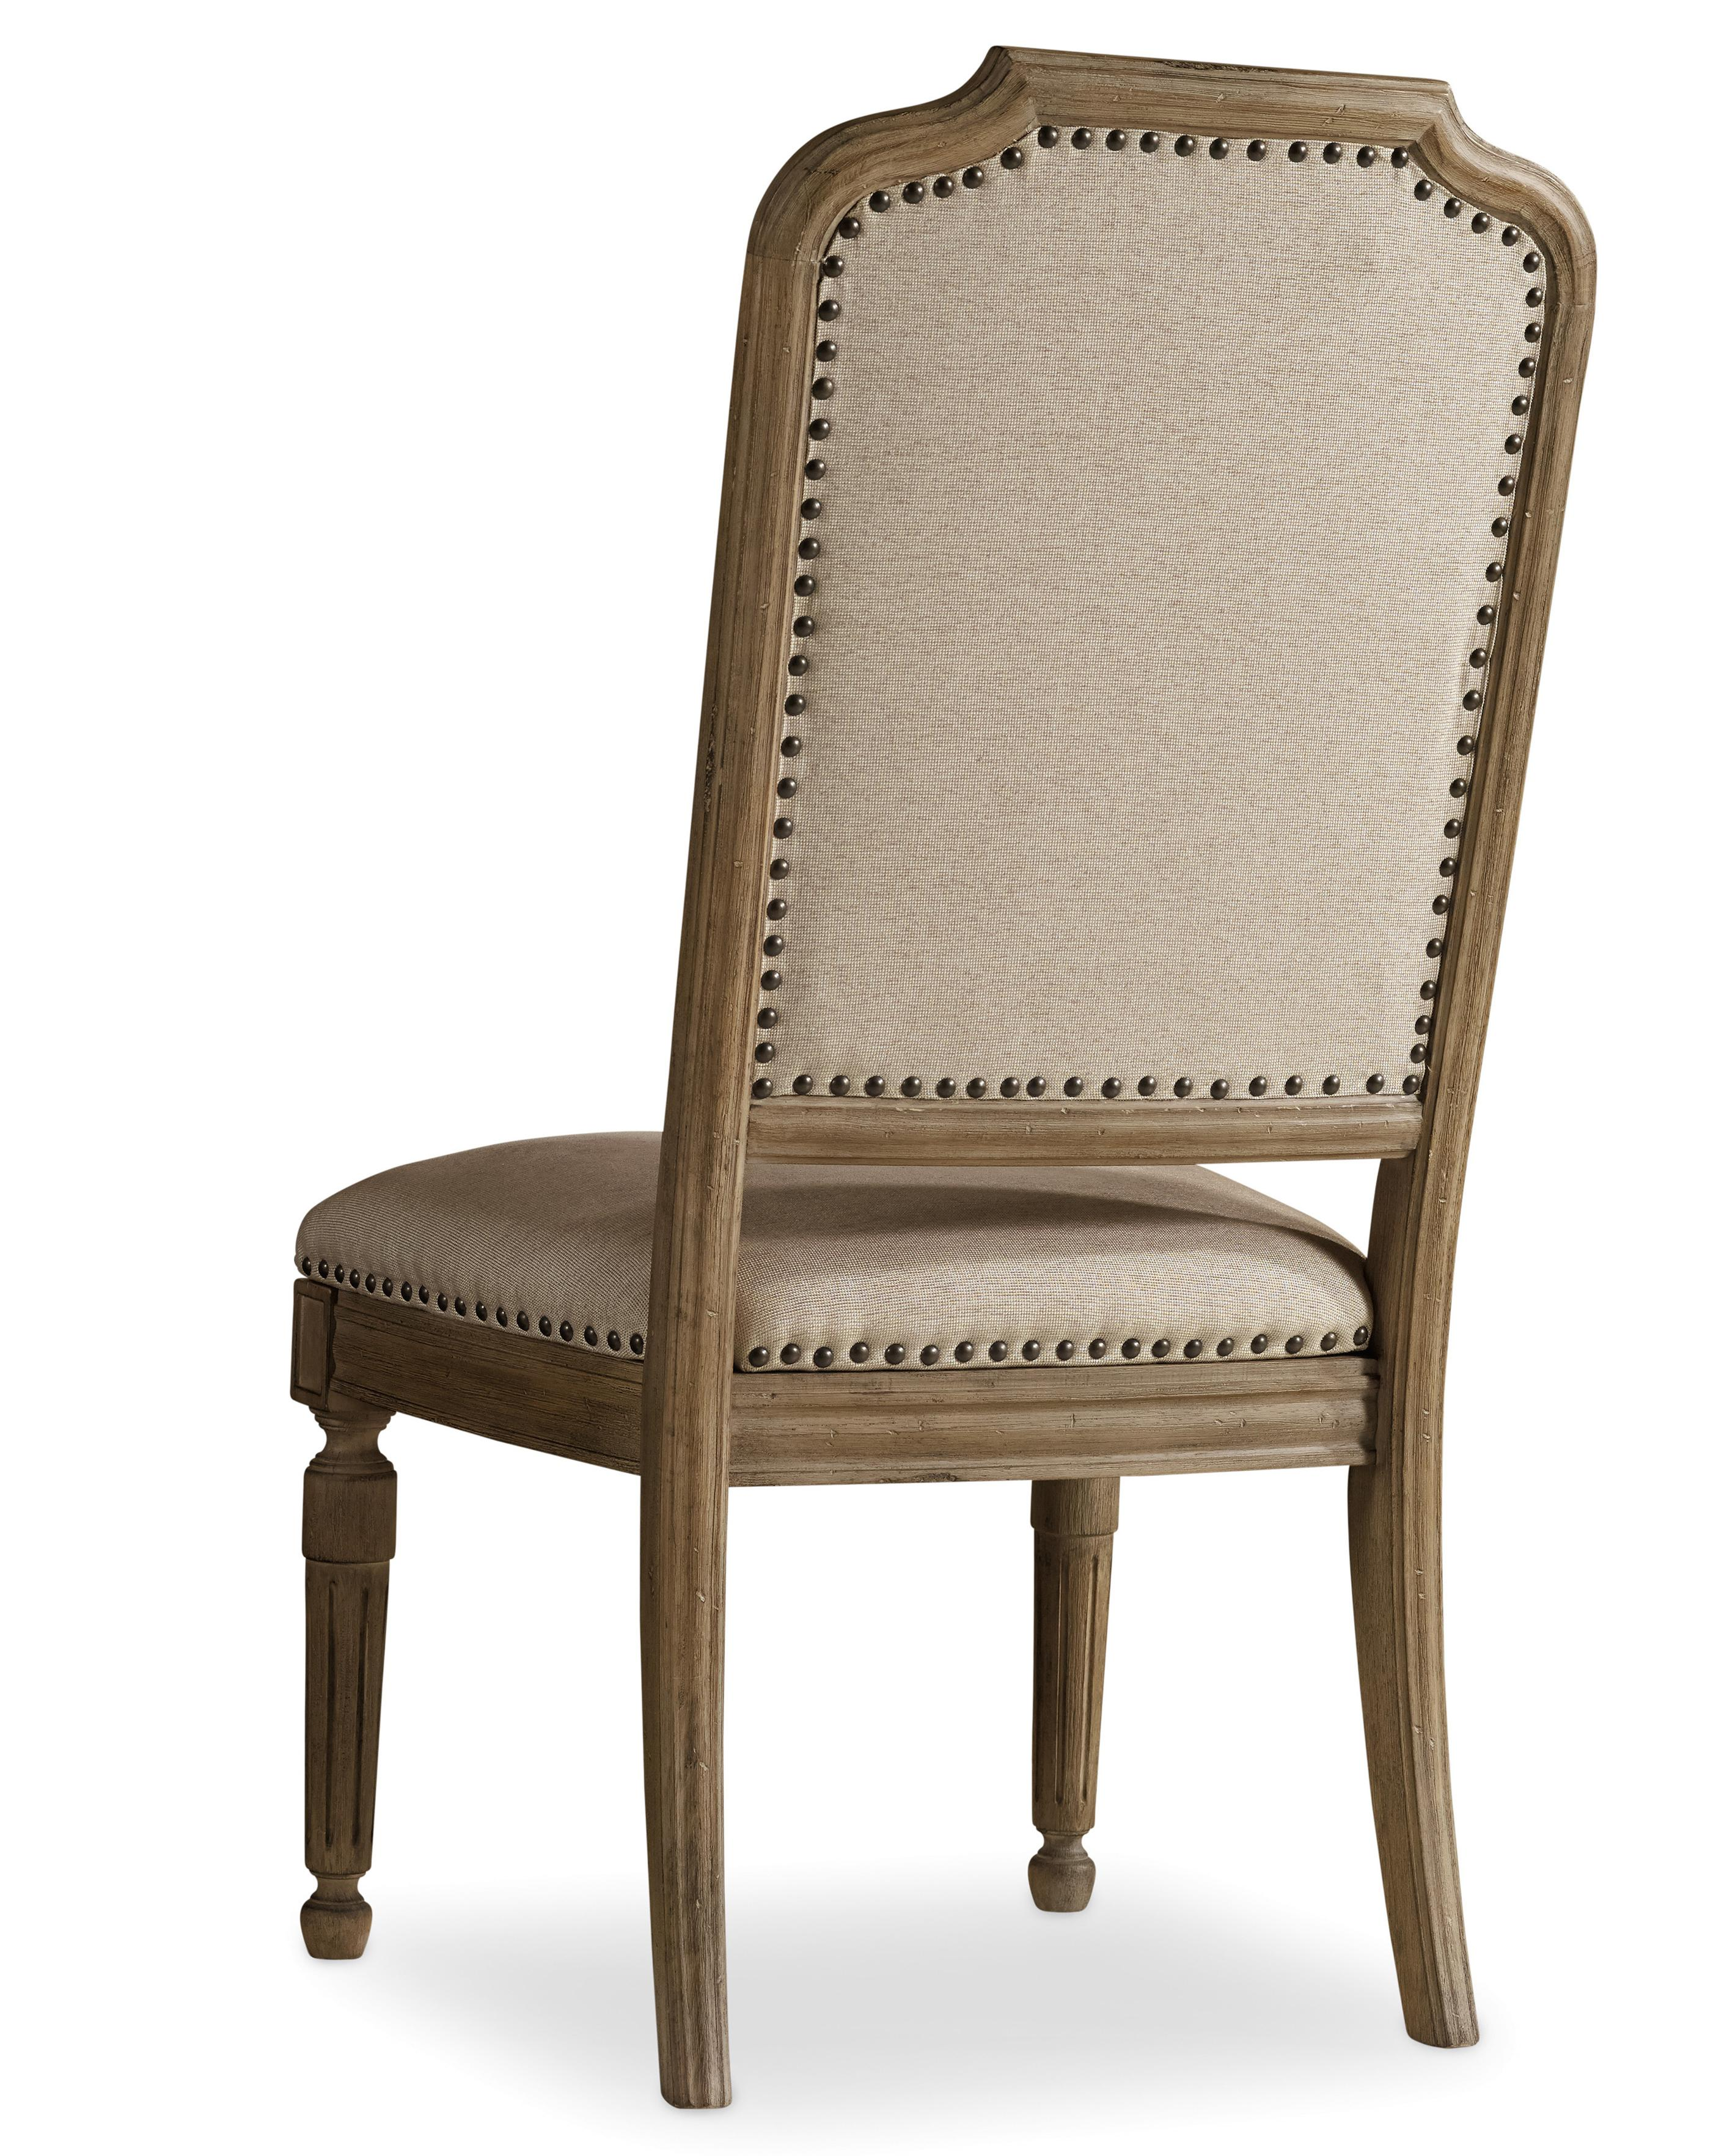 Hamilton Home Corsica Upholstered Side Chair - Item Number: 5180-75411